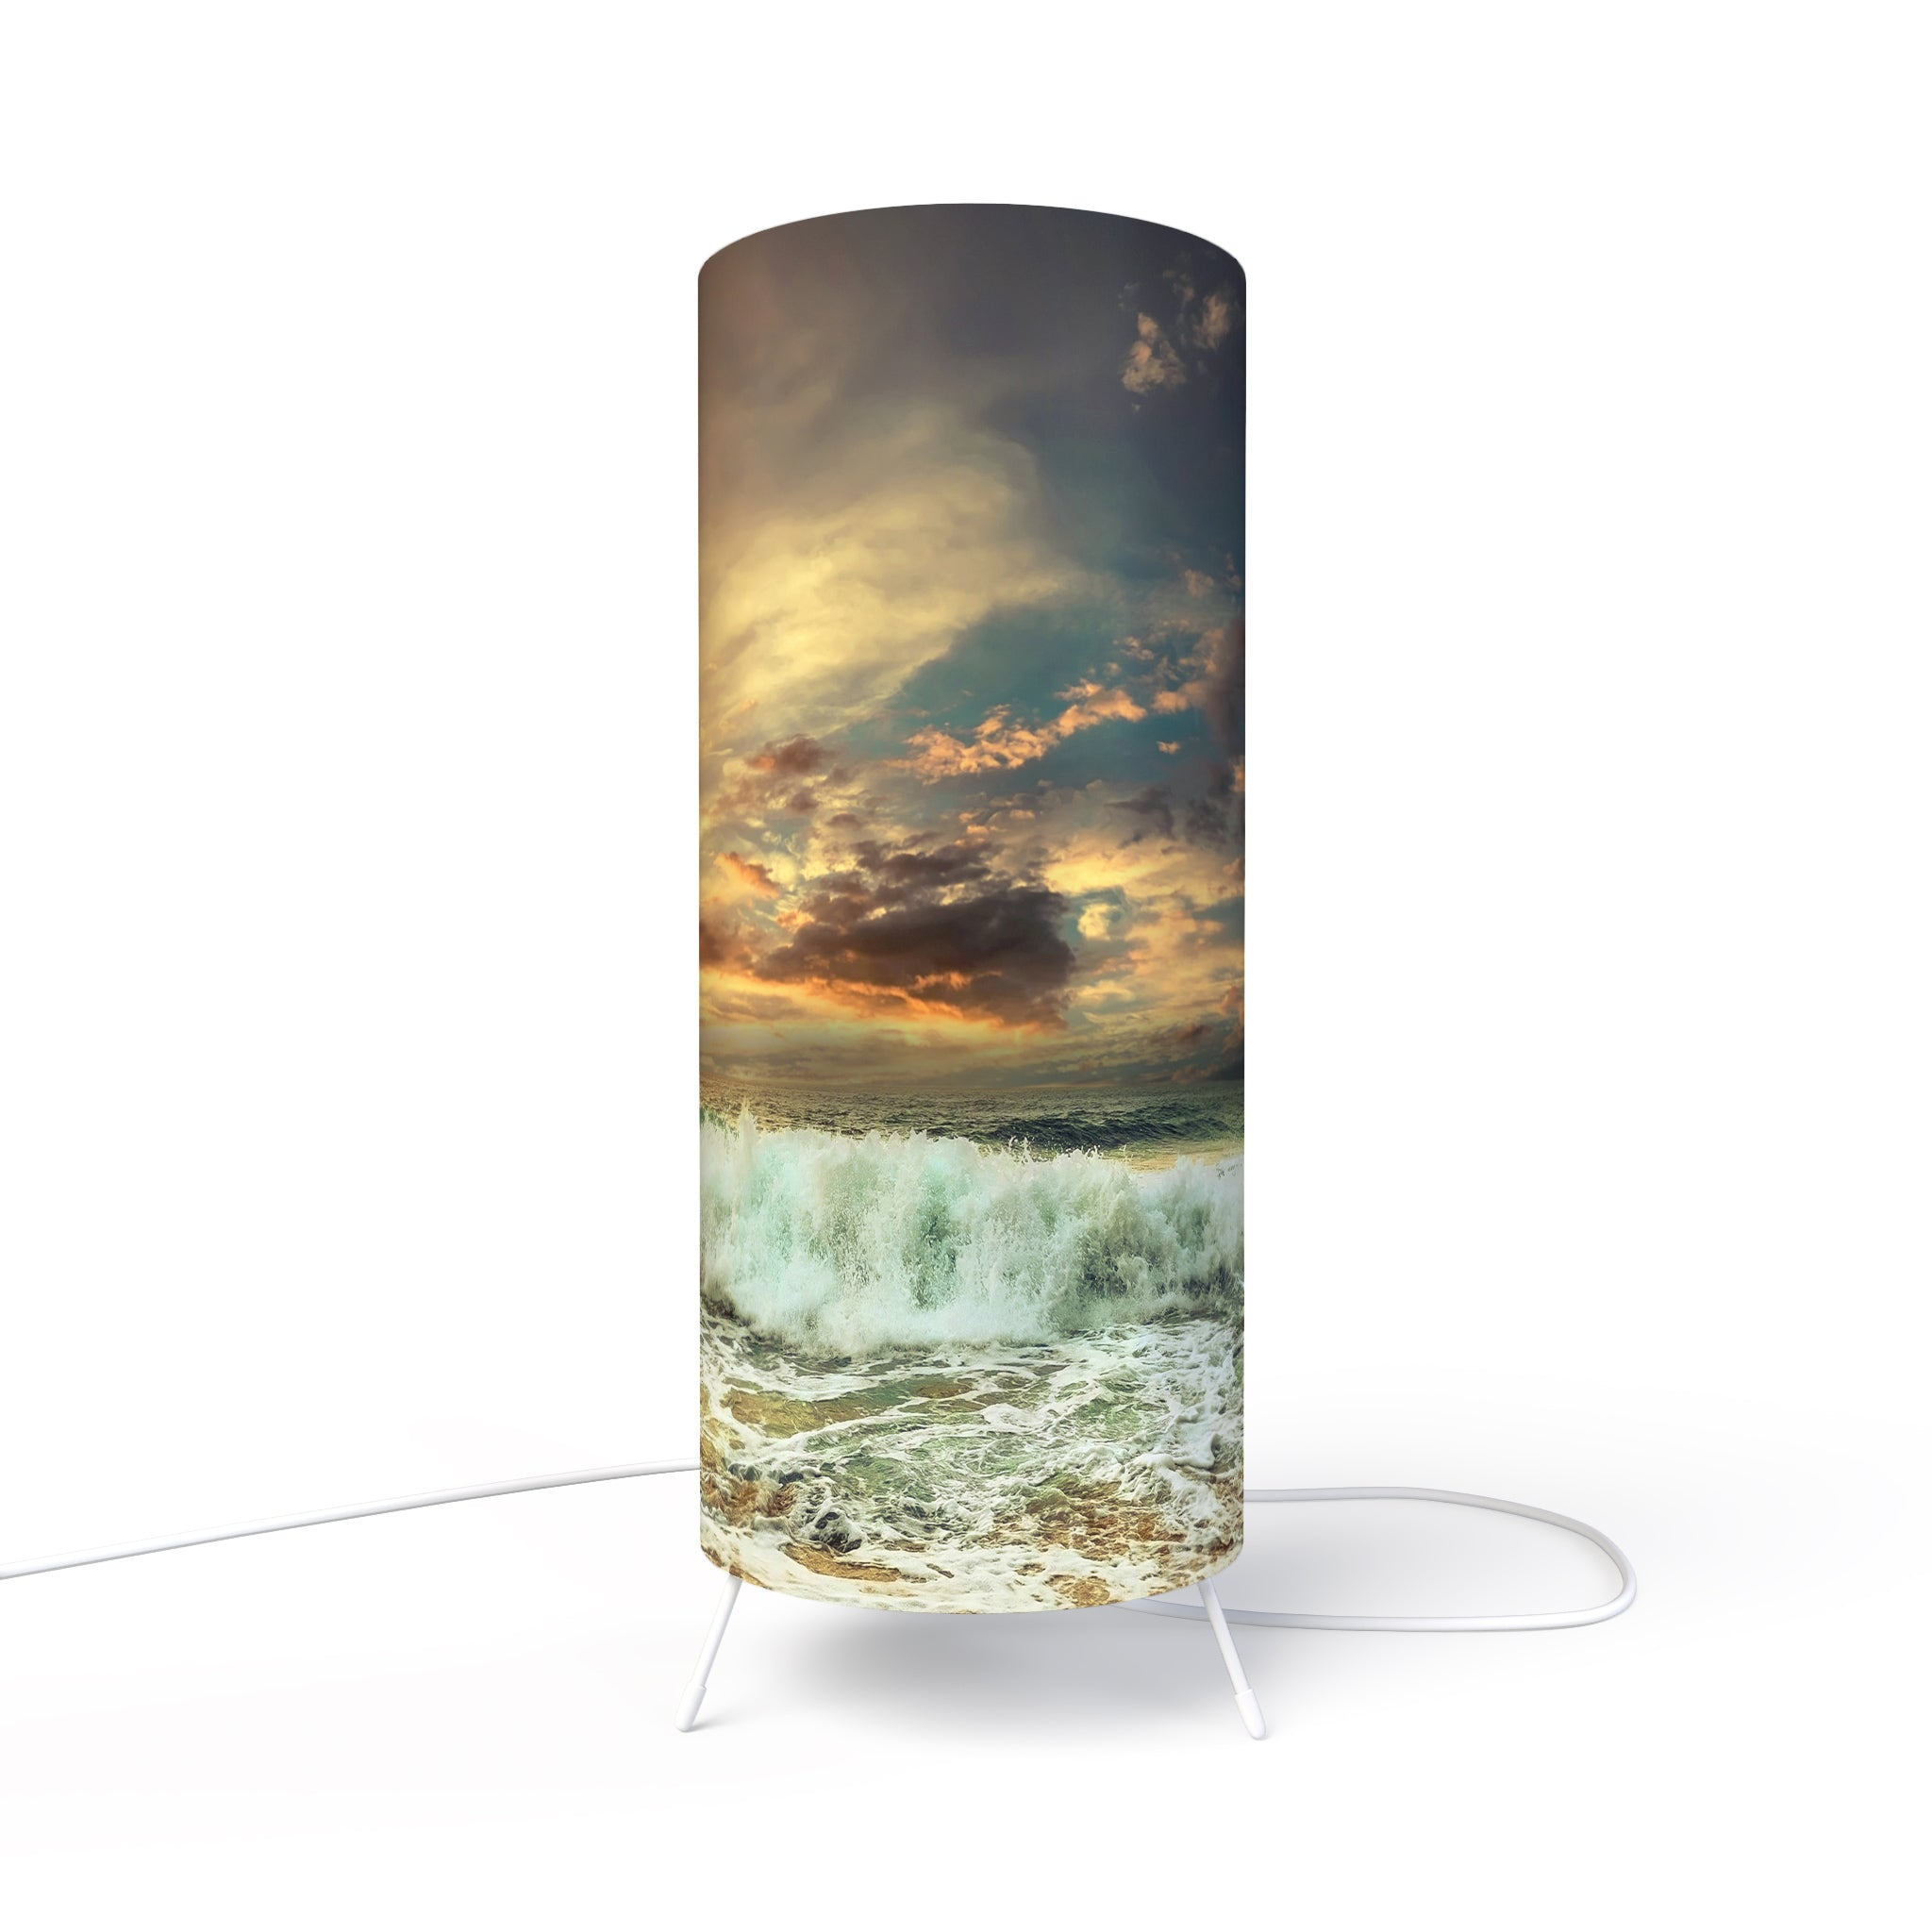 Modern Lamp designed by Fotbee with image of ocean sunset